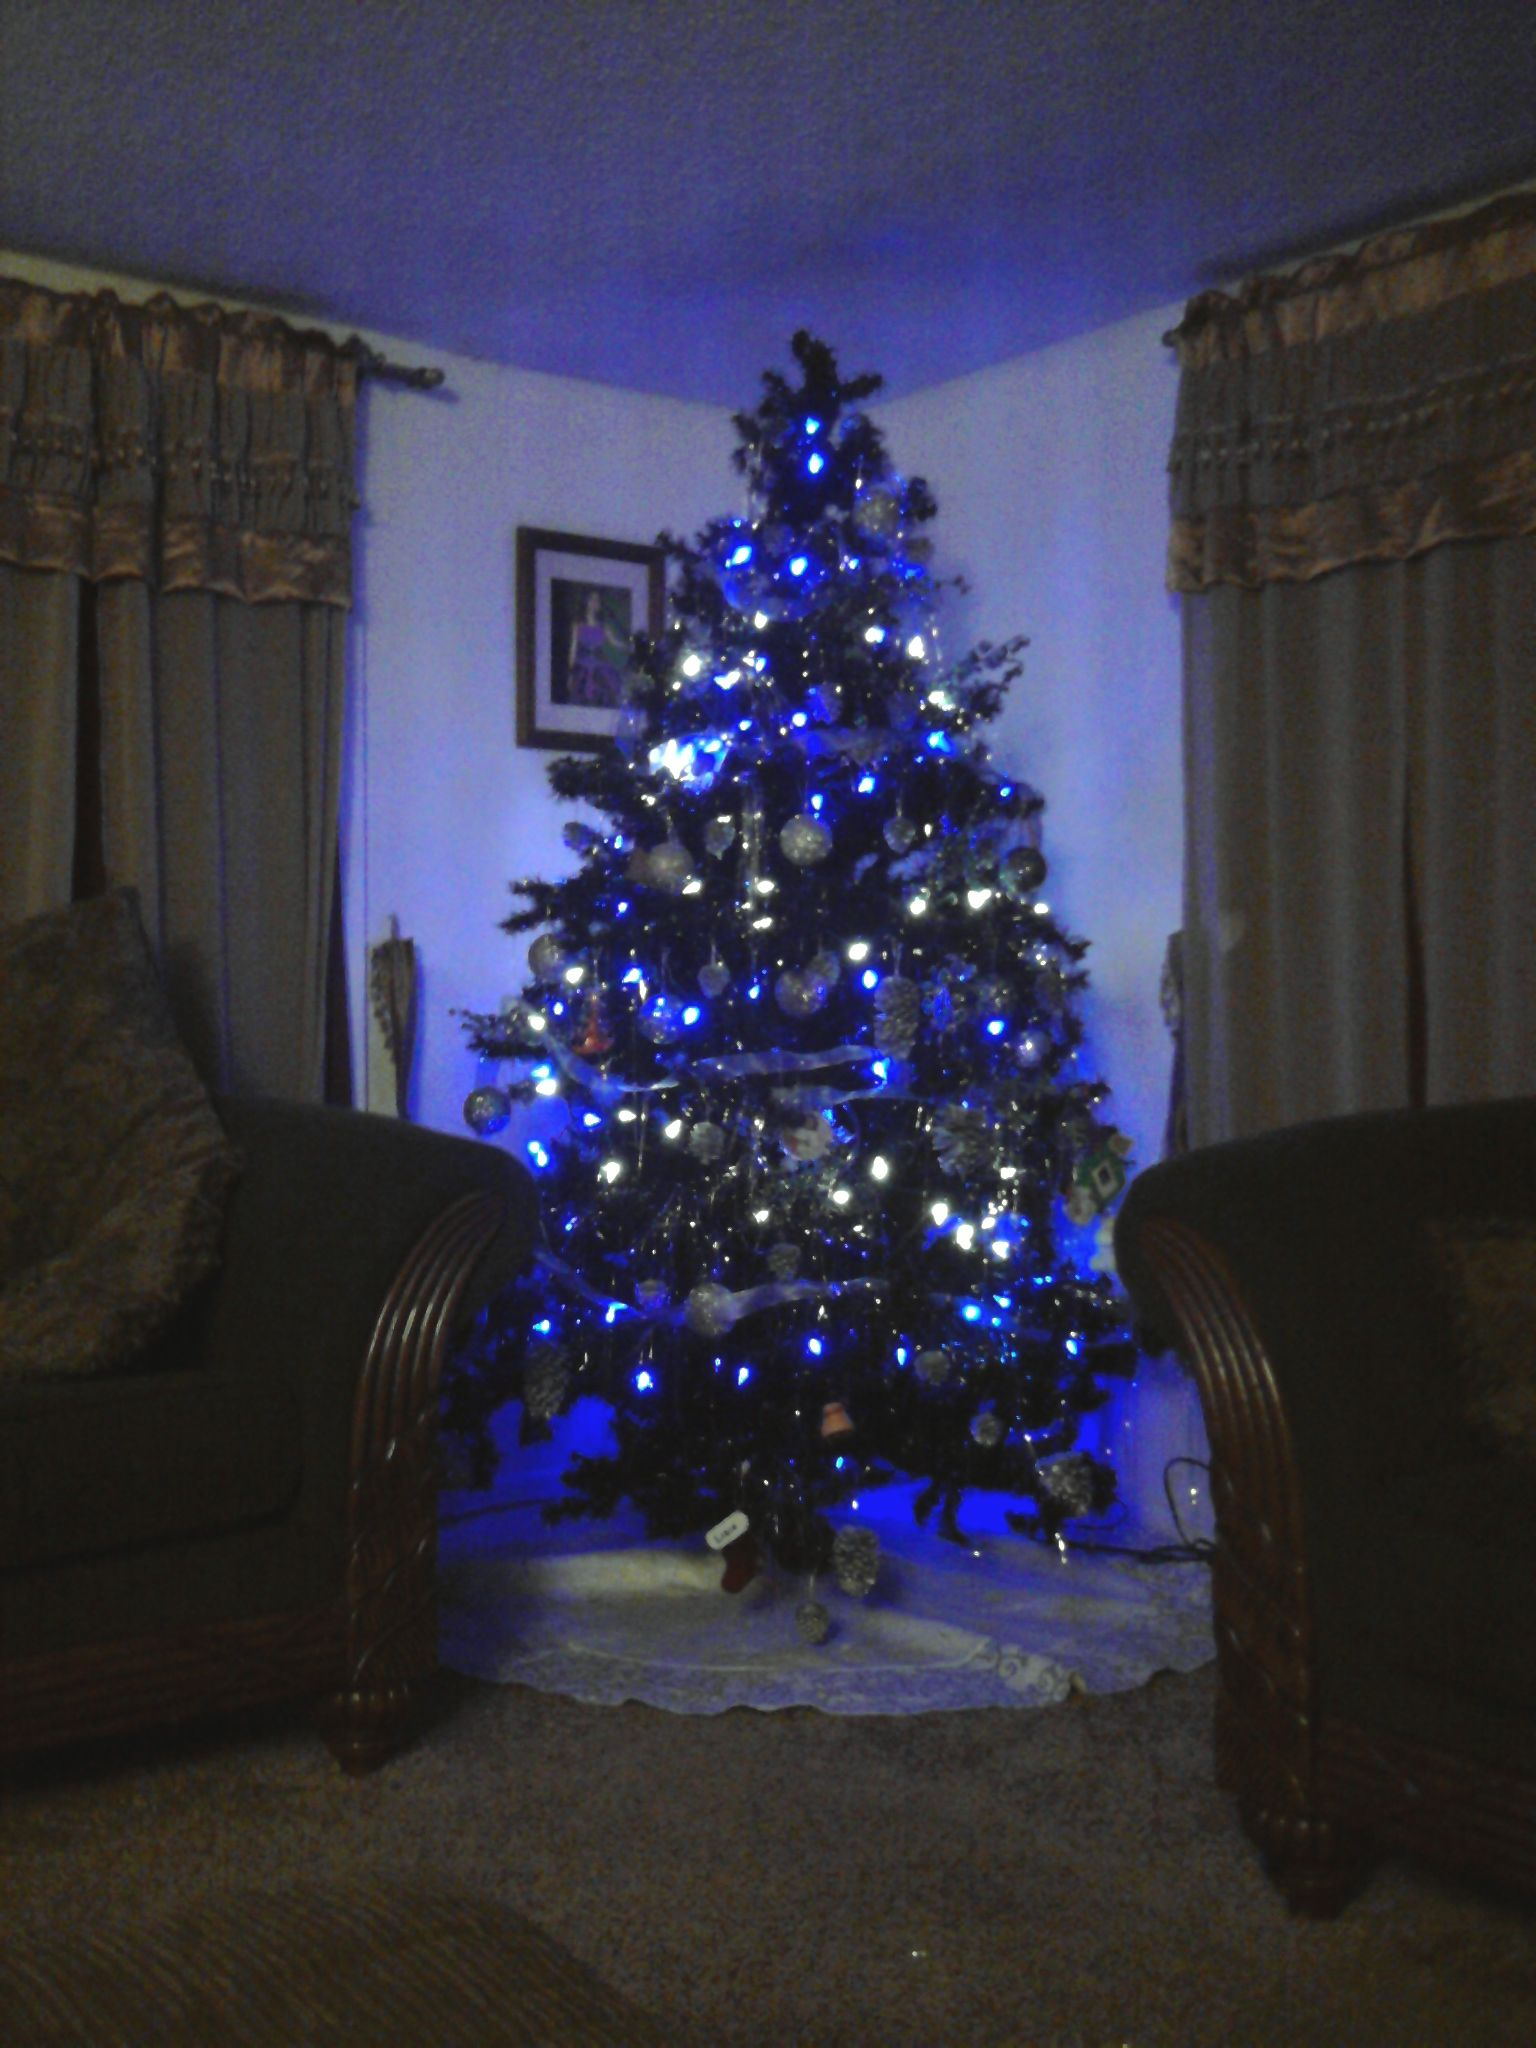 Our Black Christmas tree with blue/white lights | Holidays and ...